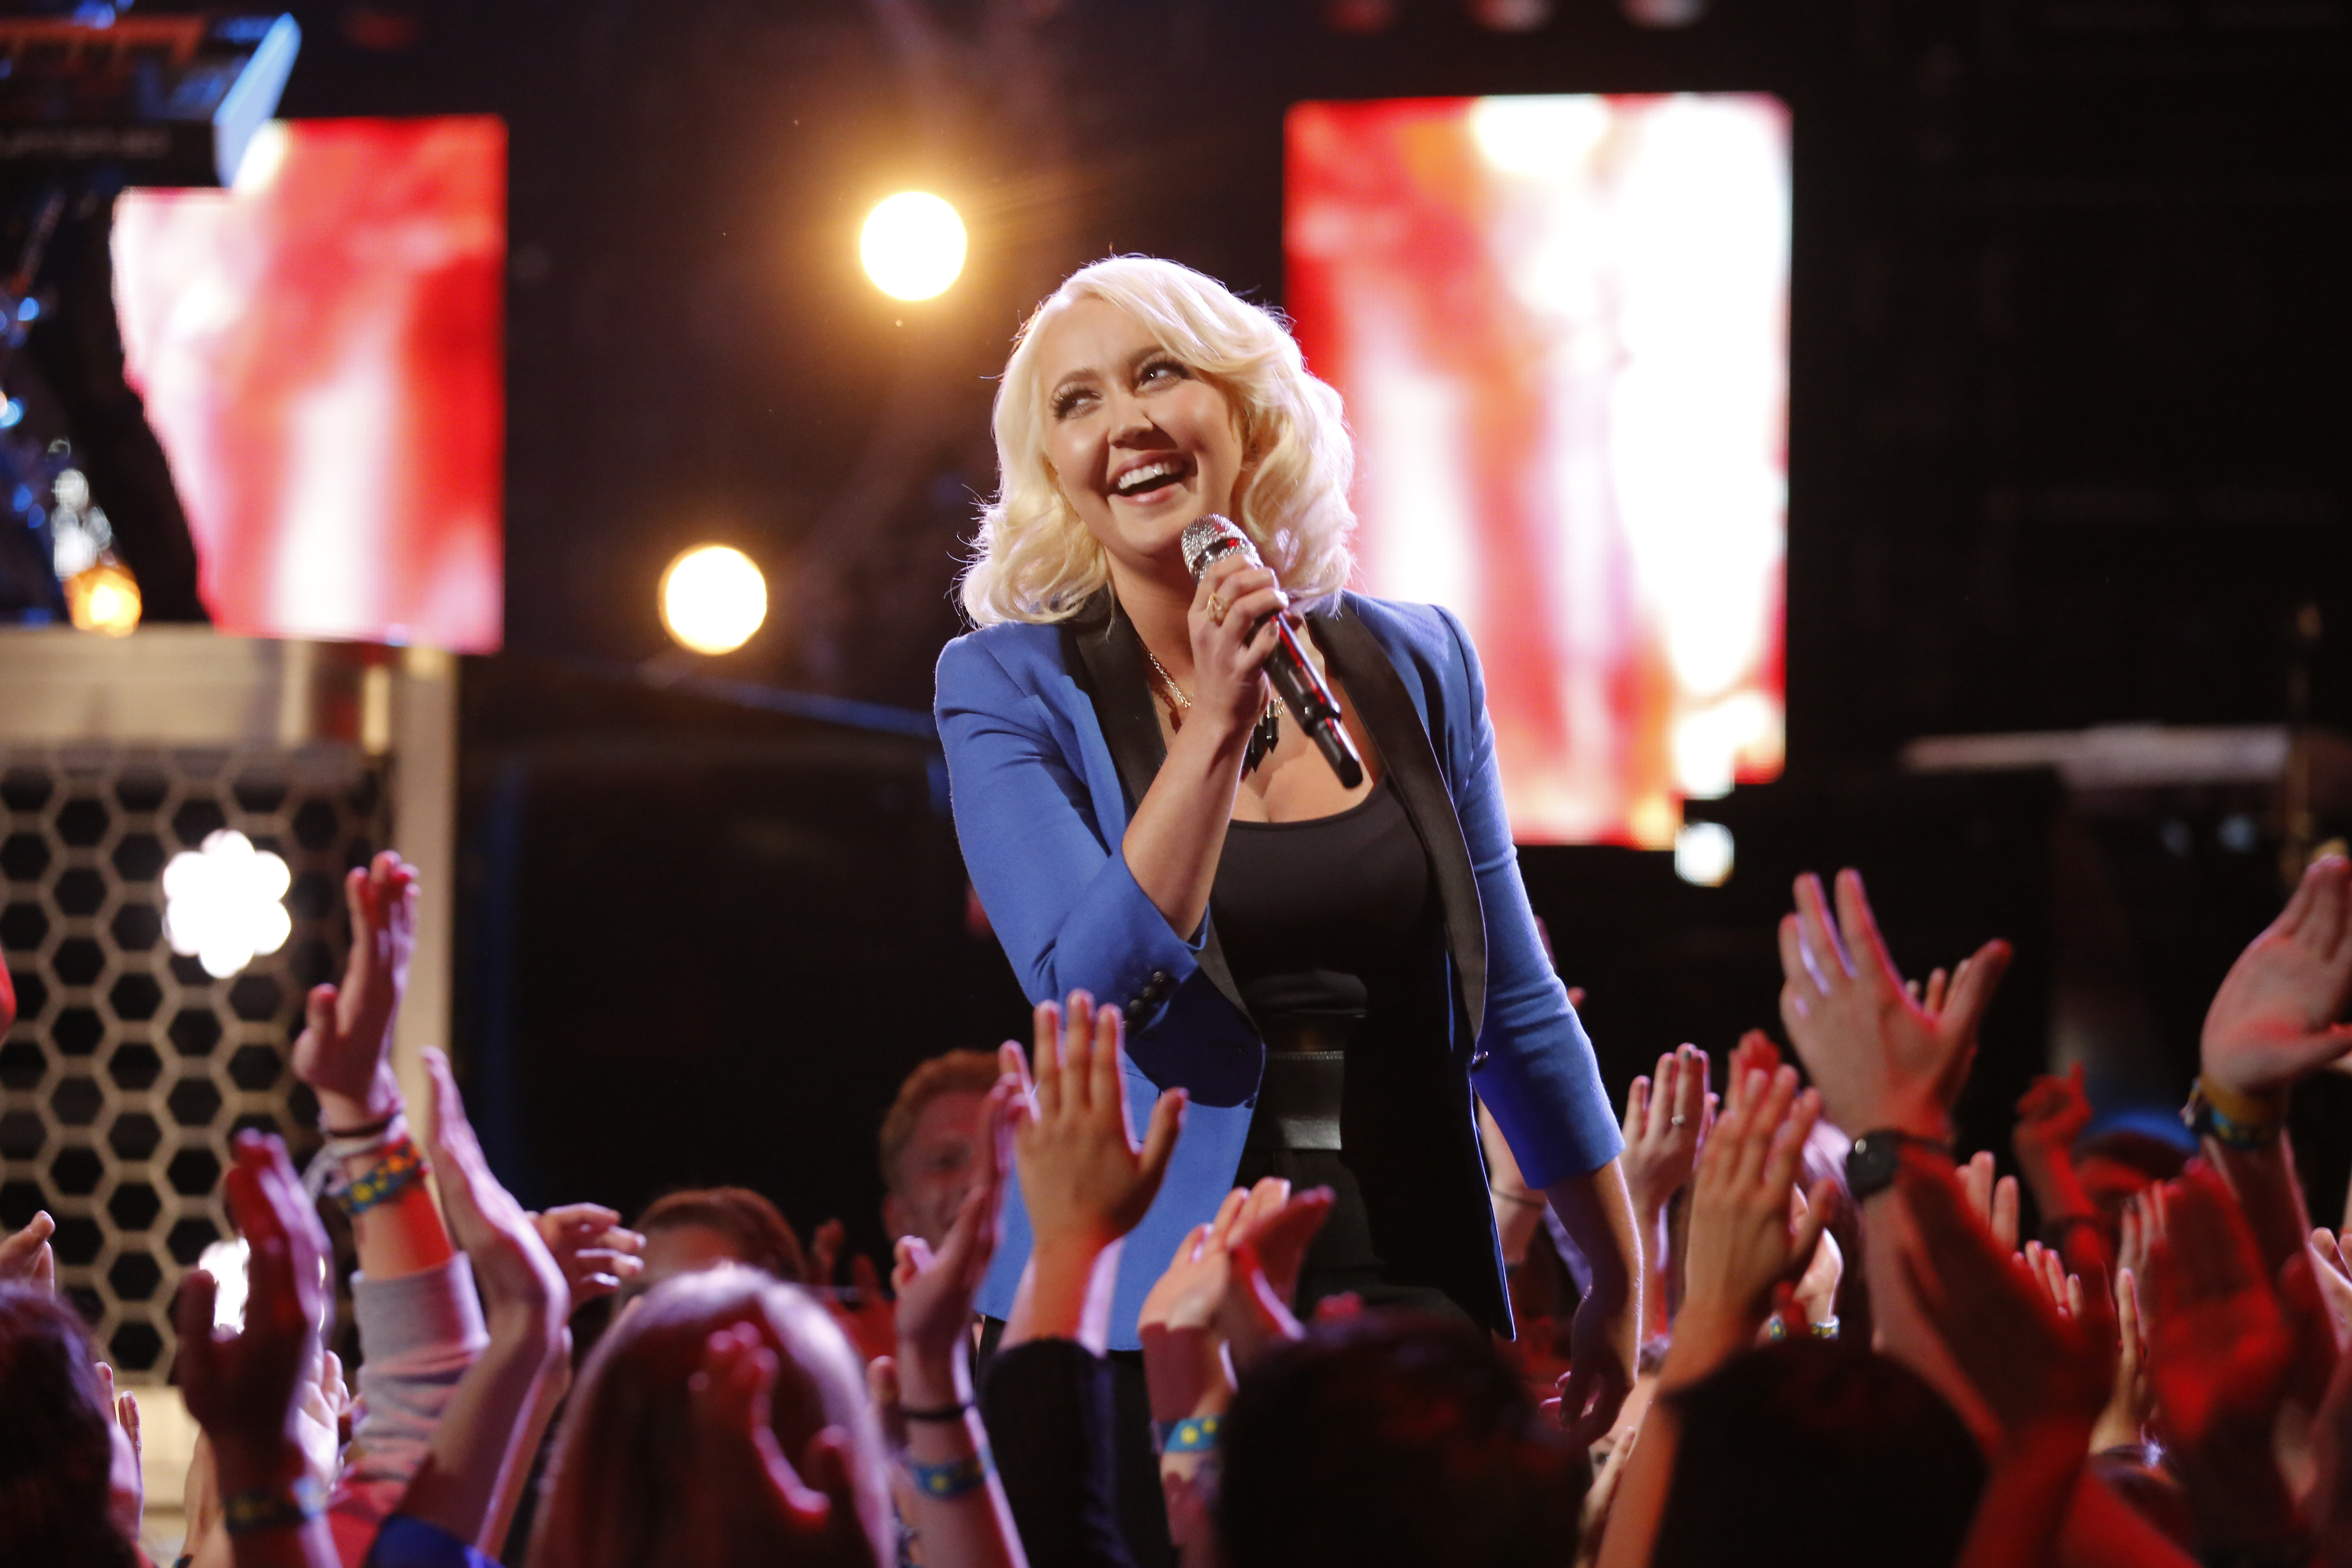 'The Voice' runner-up Meghan Linsey is planning to release a single, and  possibly EP, in the coming weeks.